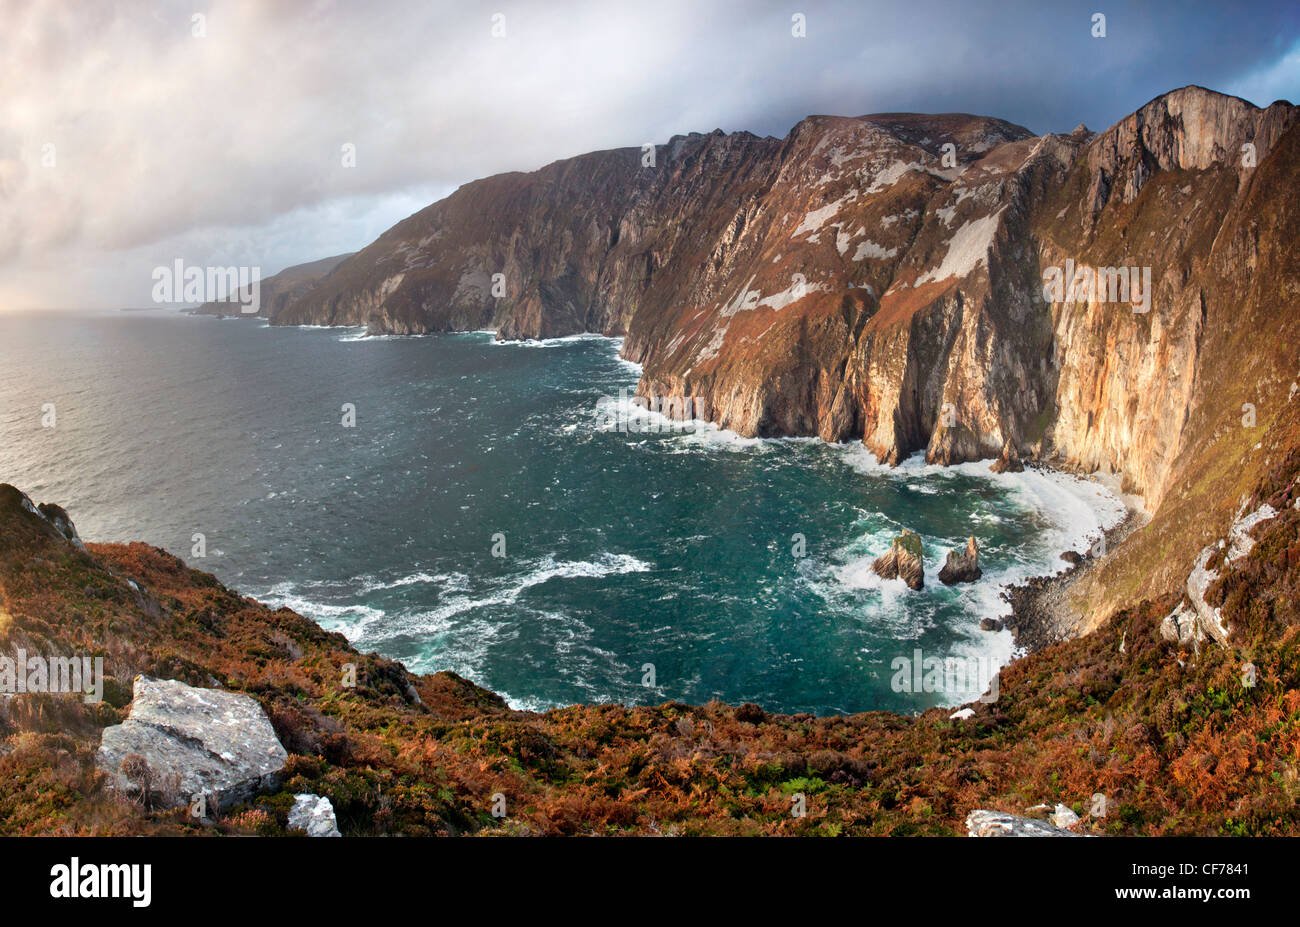 Slieve League cliffs, situated on the West coast of Donegal Stock Photo